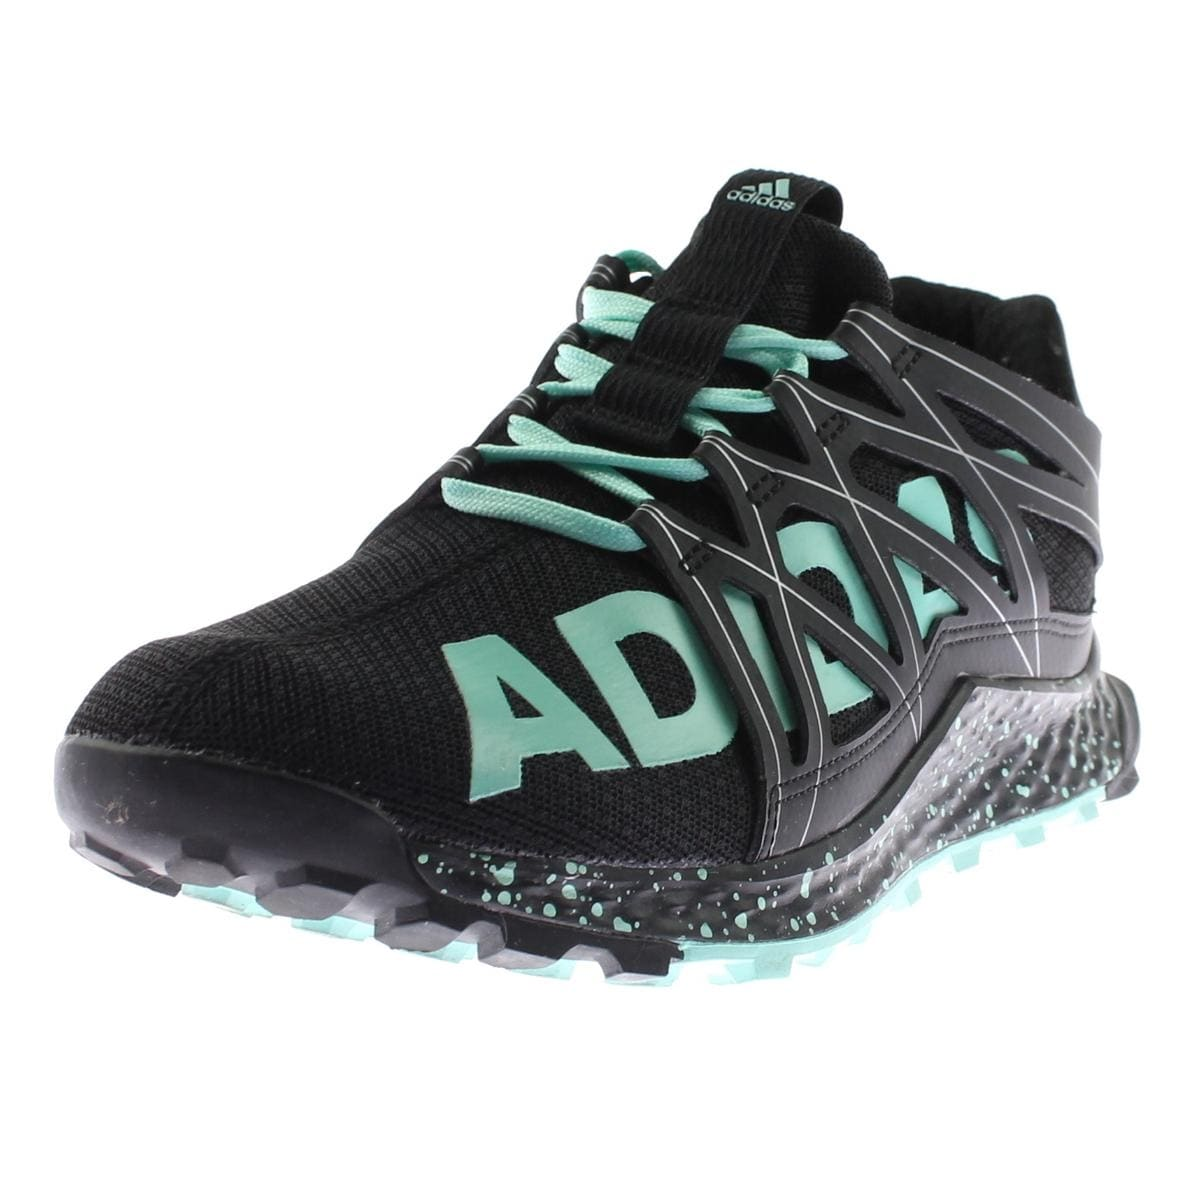 342cd2184cf0c Shop Adidas Womens Vigor Bounce Trail Running Shoes Speckled ...